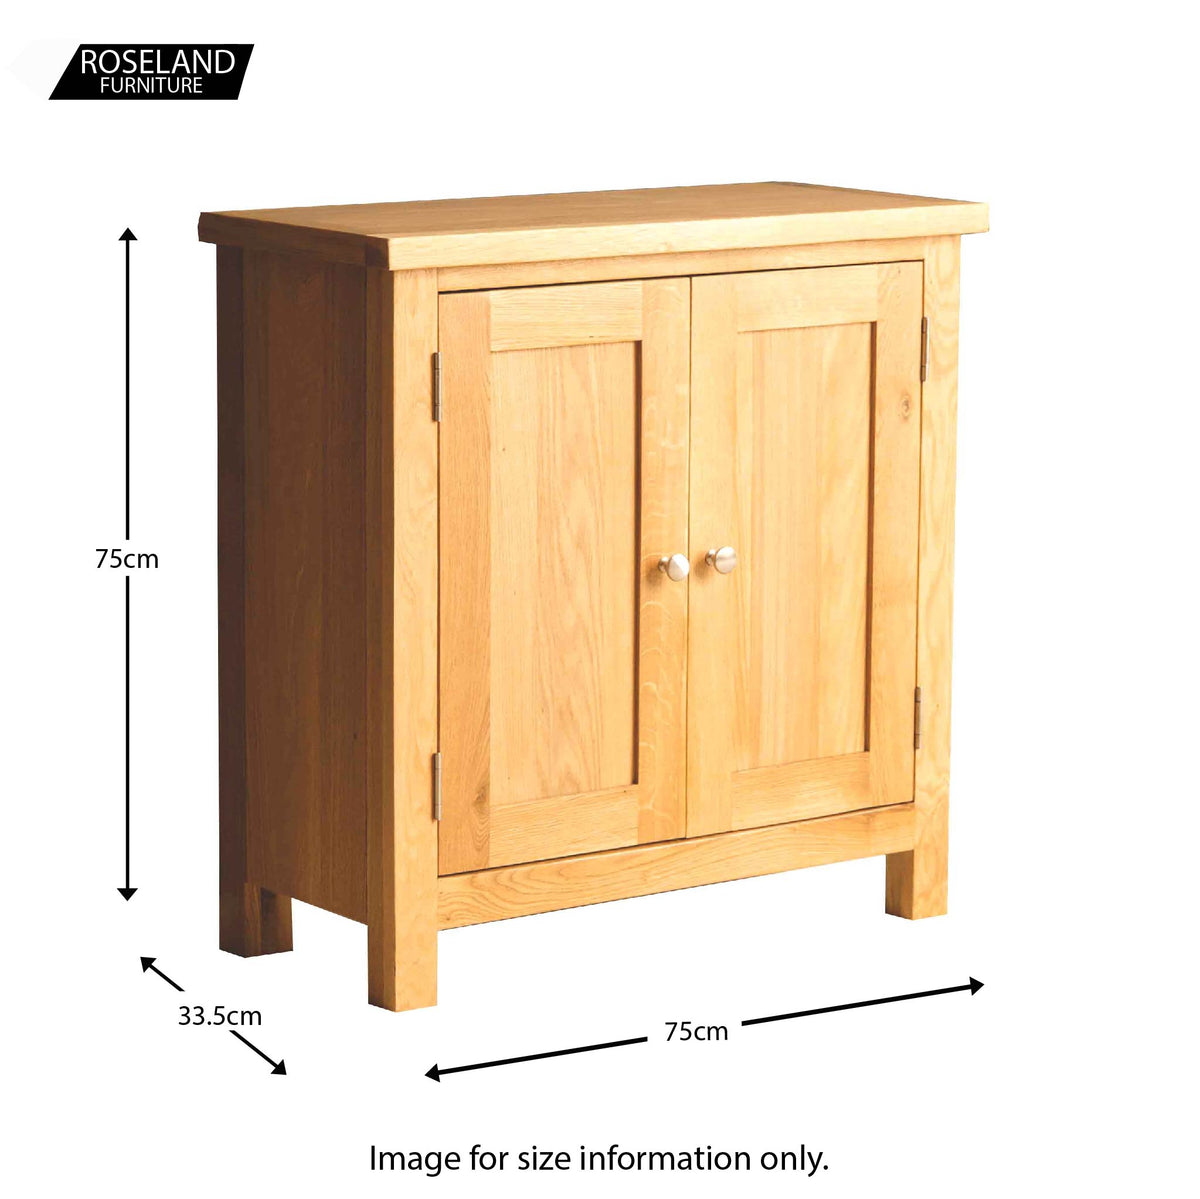 The London Oak Cupboard - Size guide